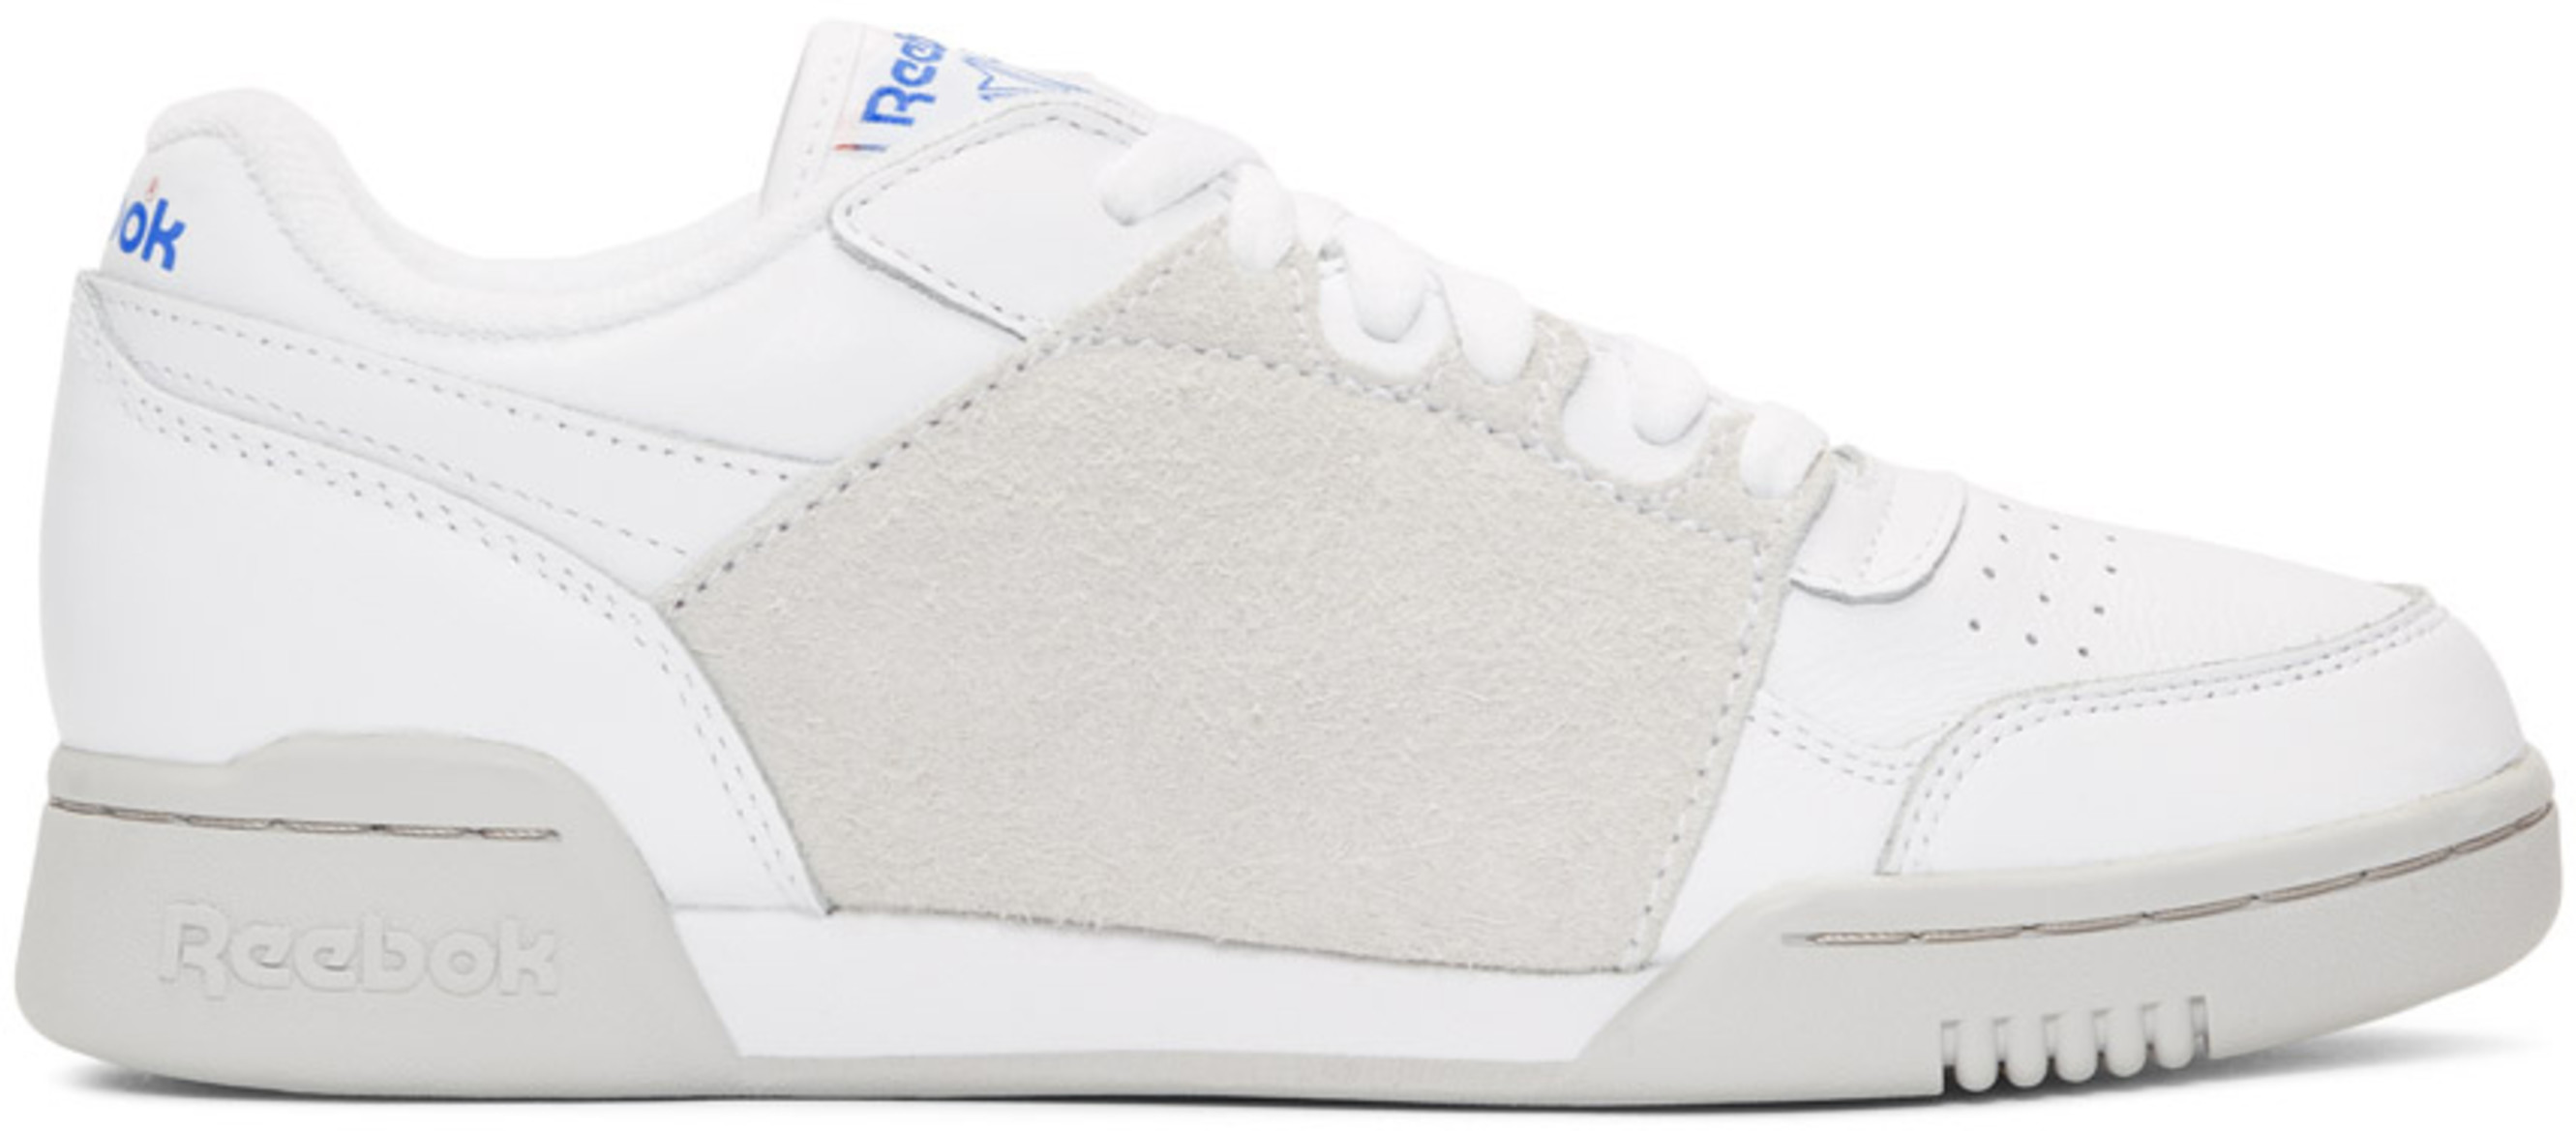 4c8acc5b62c16 Reebok Classics for Men SS19 Collection